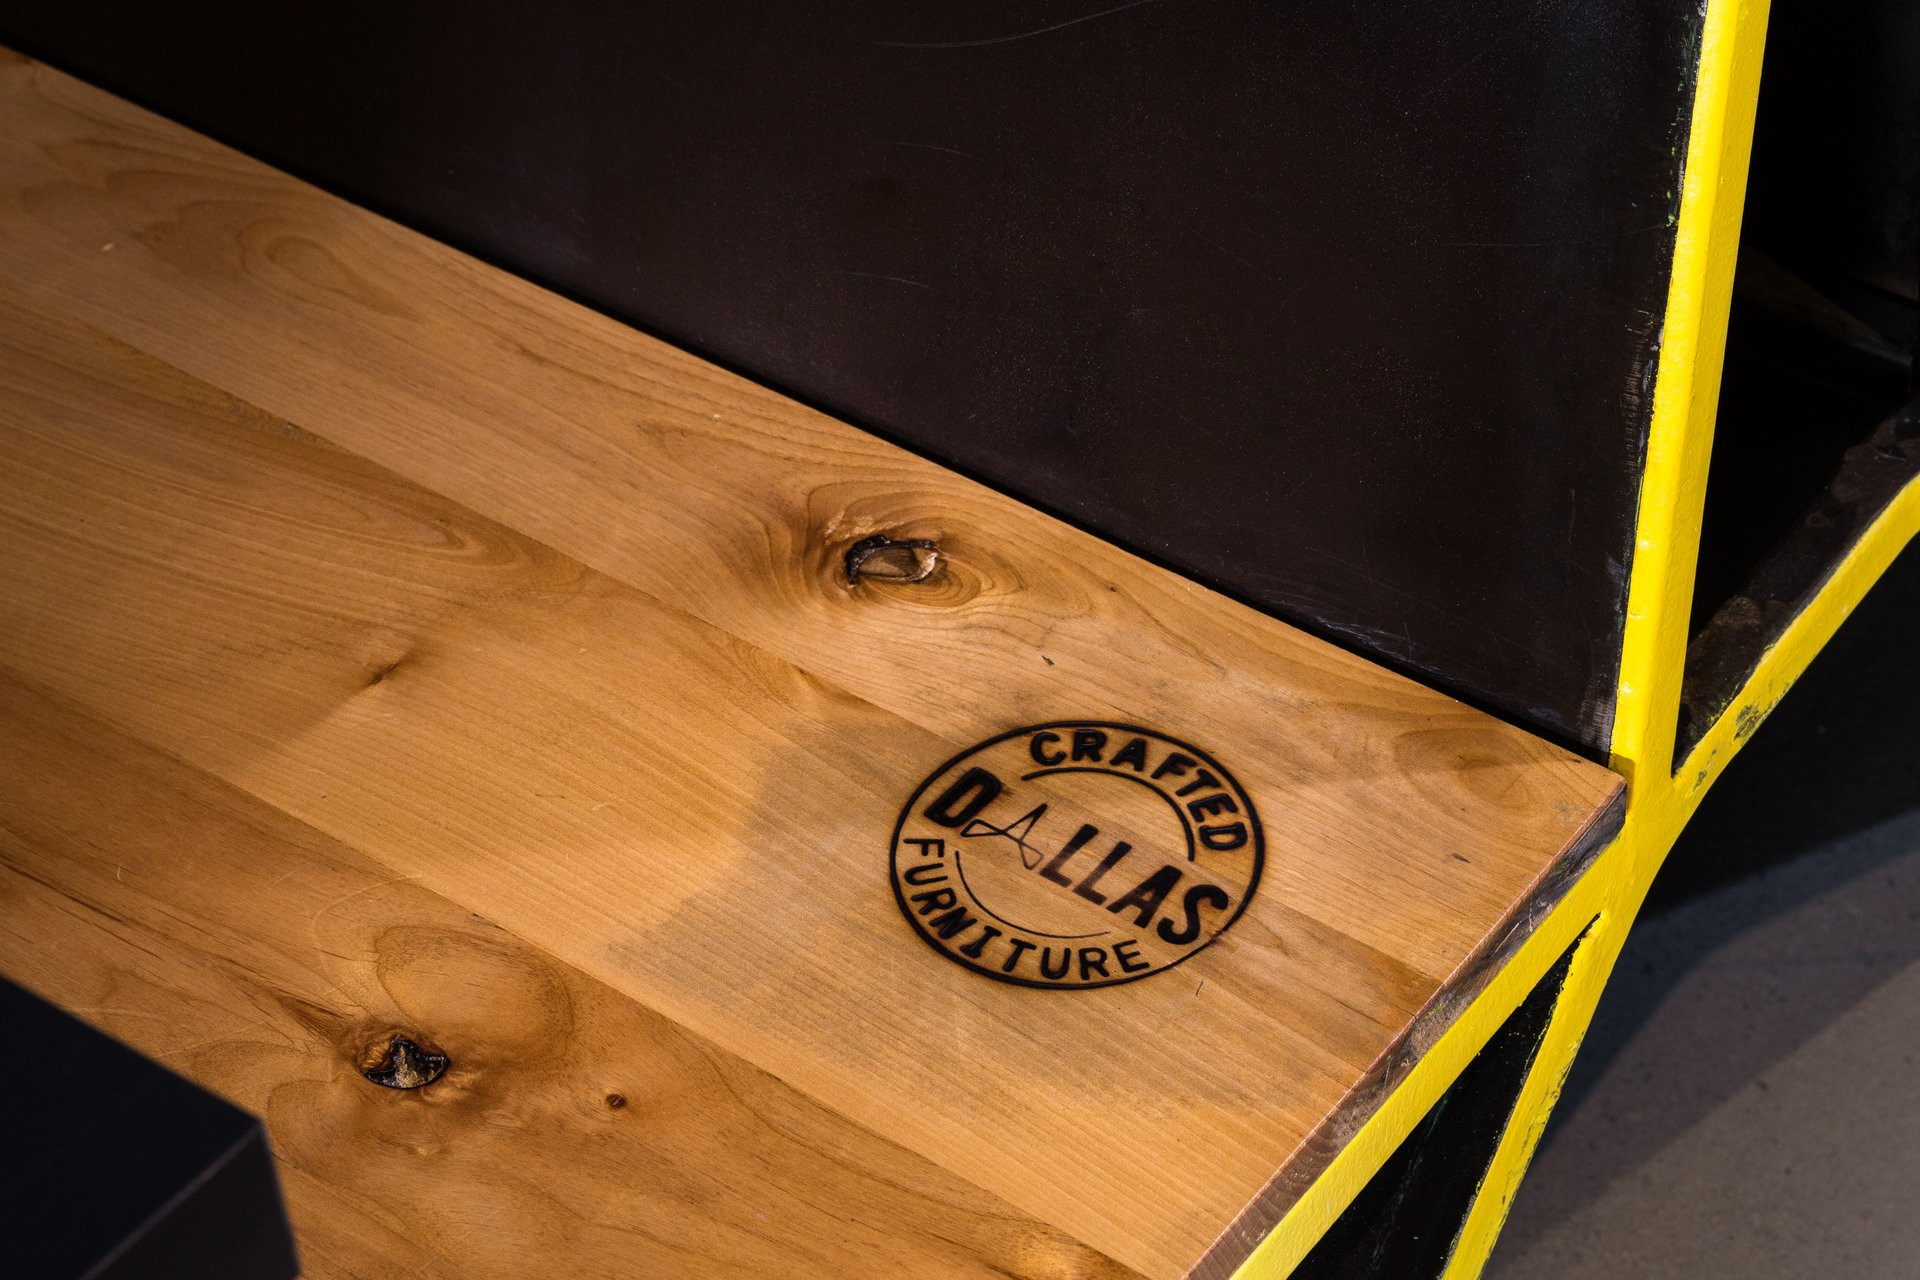 19 attractive Cost to Refinish Hardwood Floors Seattle 2021 free download cost to refinish hardwood floors seattle of photo gallery super chix hatches a new look fast casual pertaining to studio11 sc 72015 11 1920x1920 q85 subsampling 2